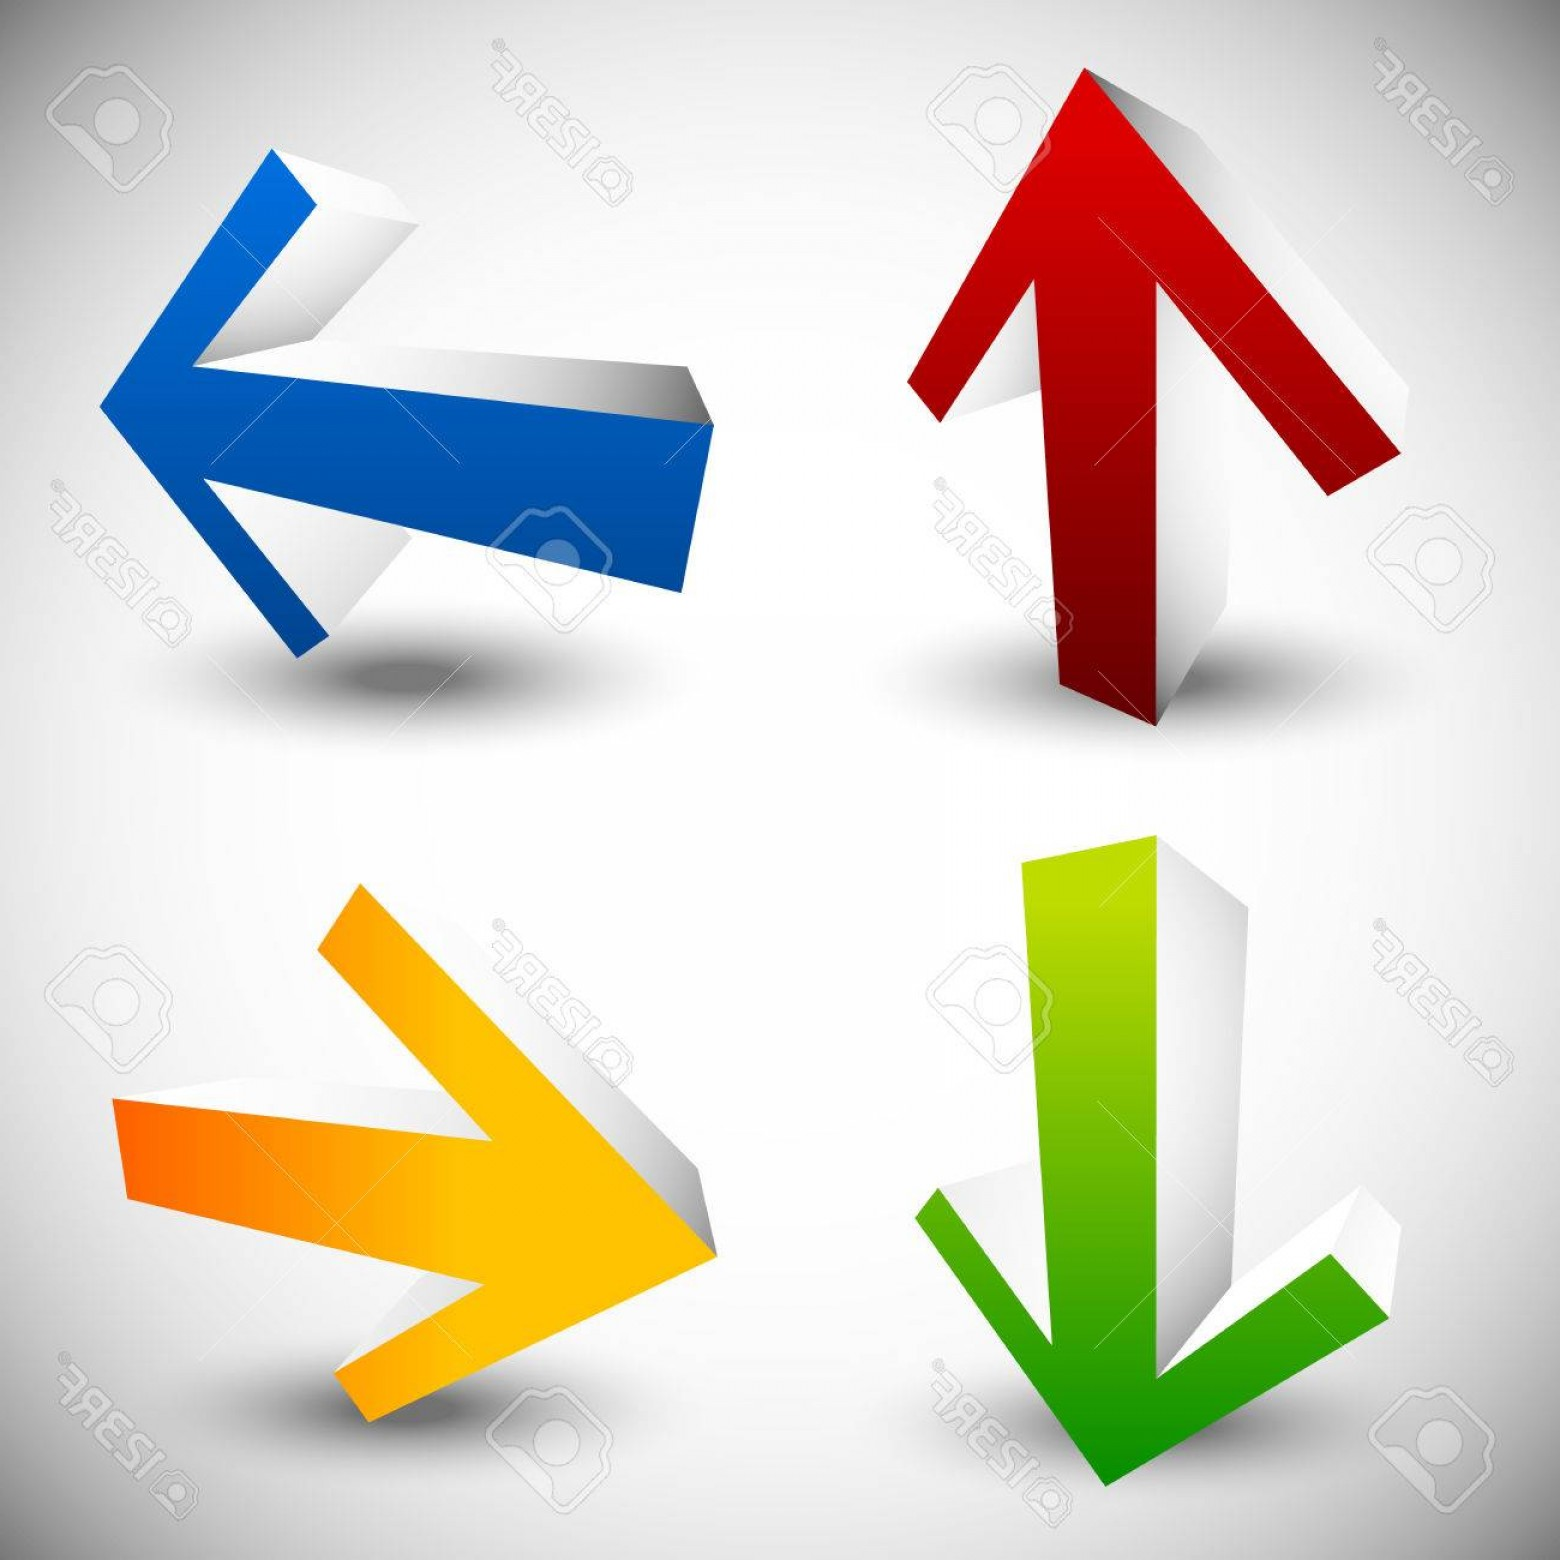 Up And Right Arrows Vector: Photostock Vector Arrow Icons In Directions Up Down Left Right Arrows